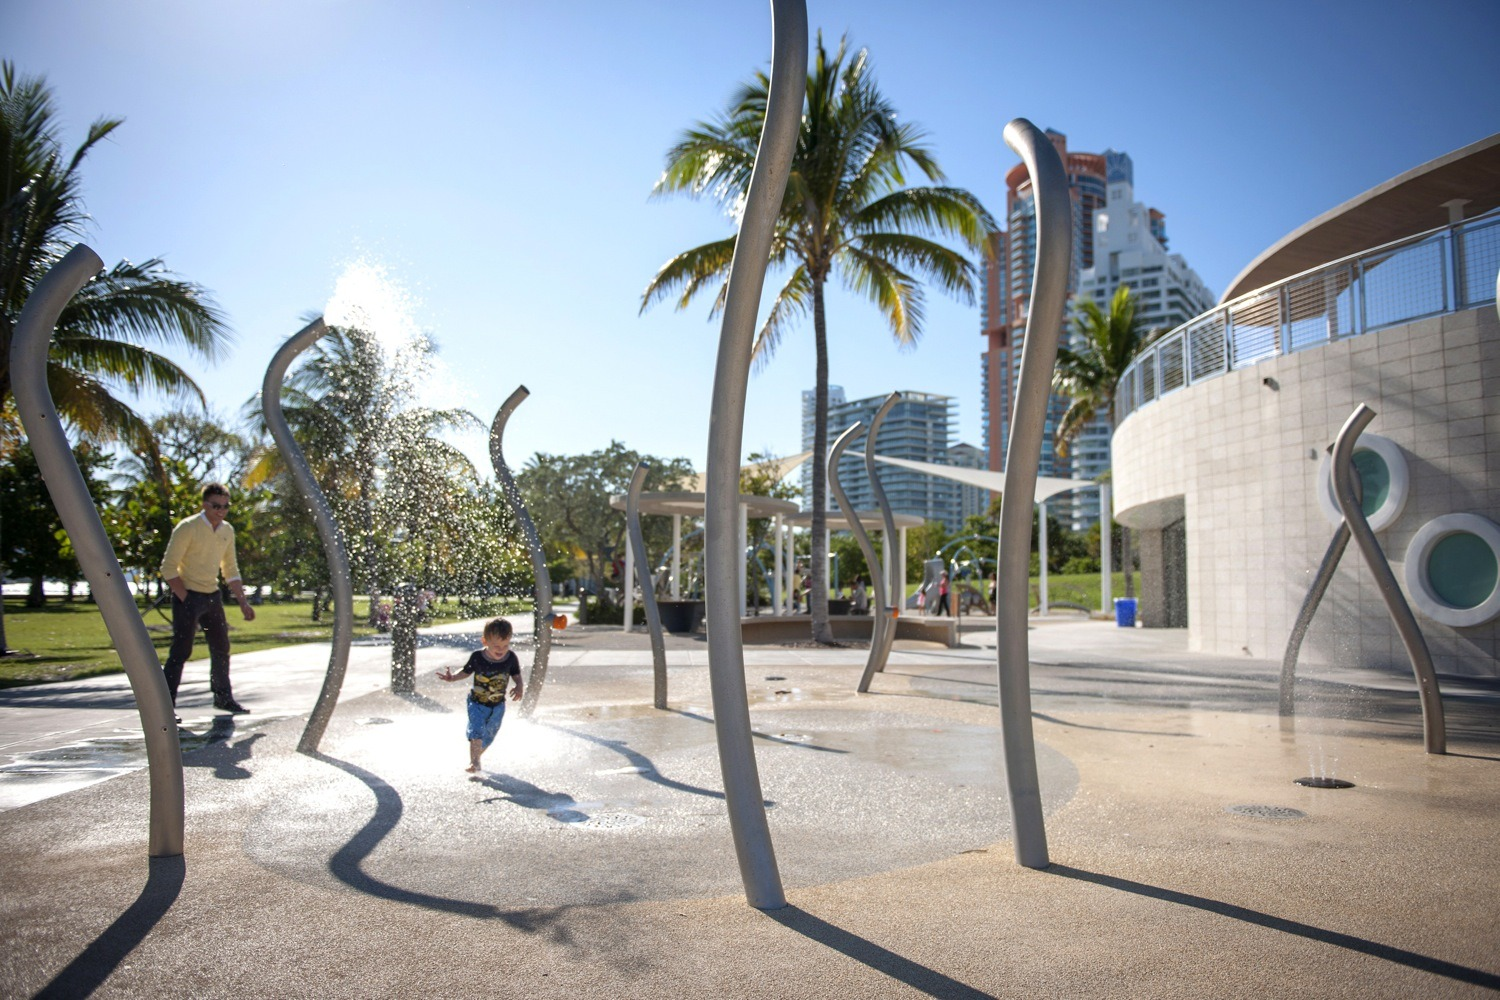 South Pointe Park, Beaches, Things to do, Miami